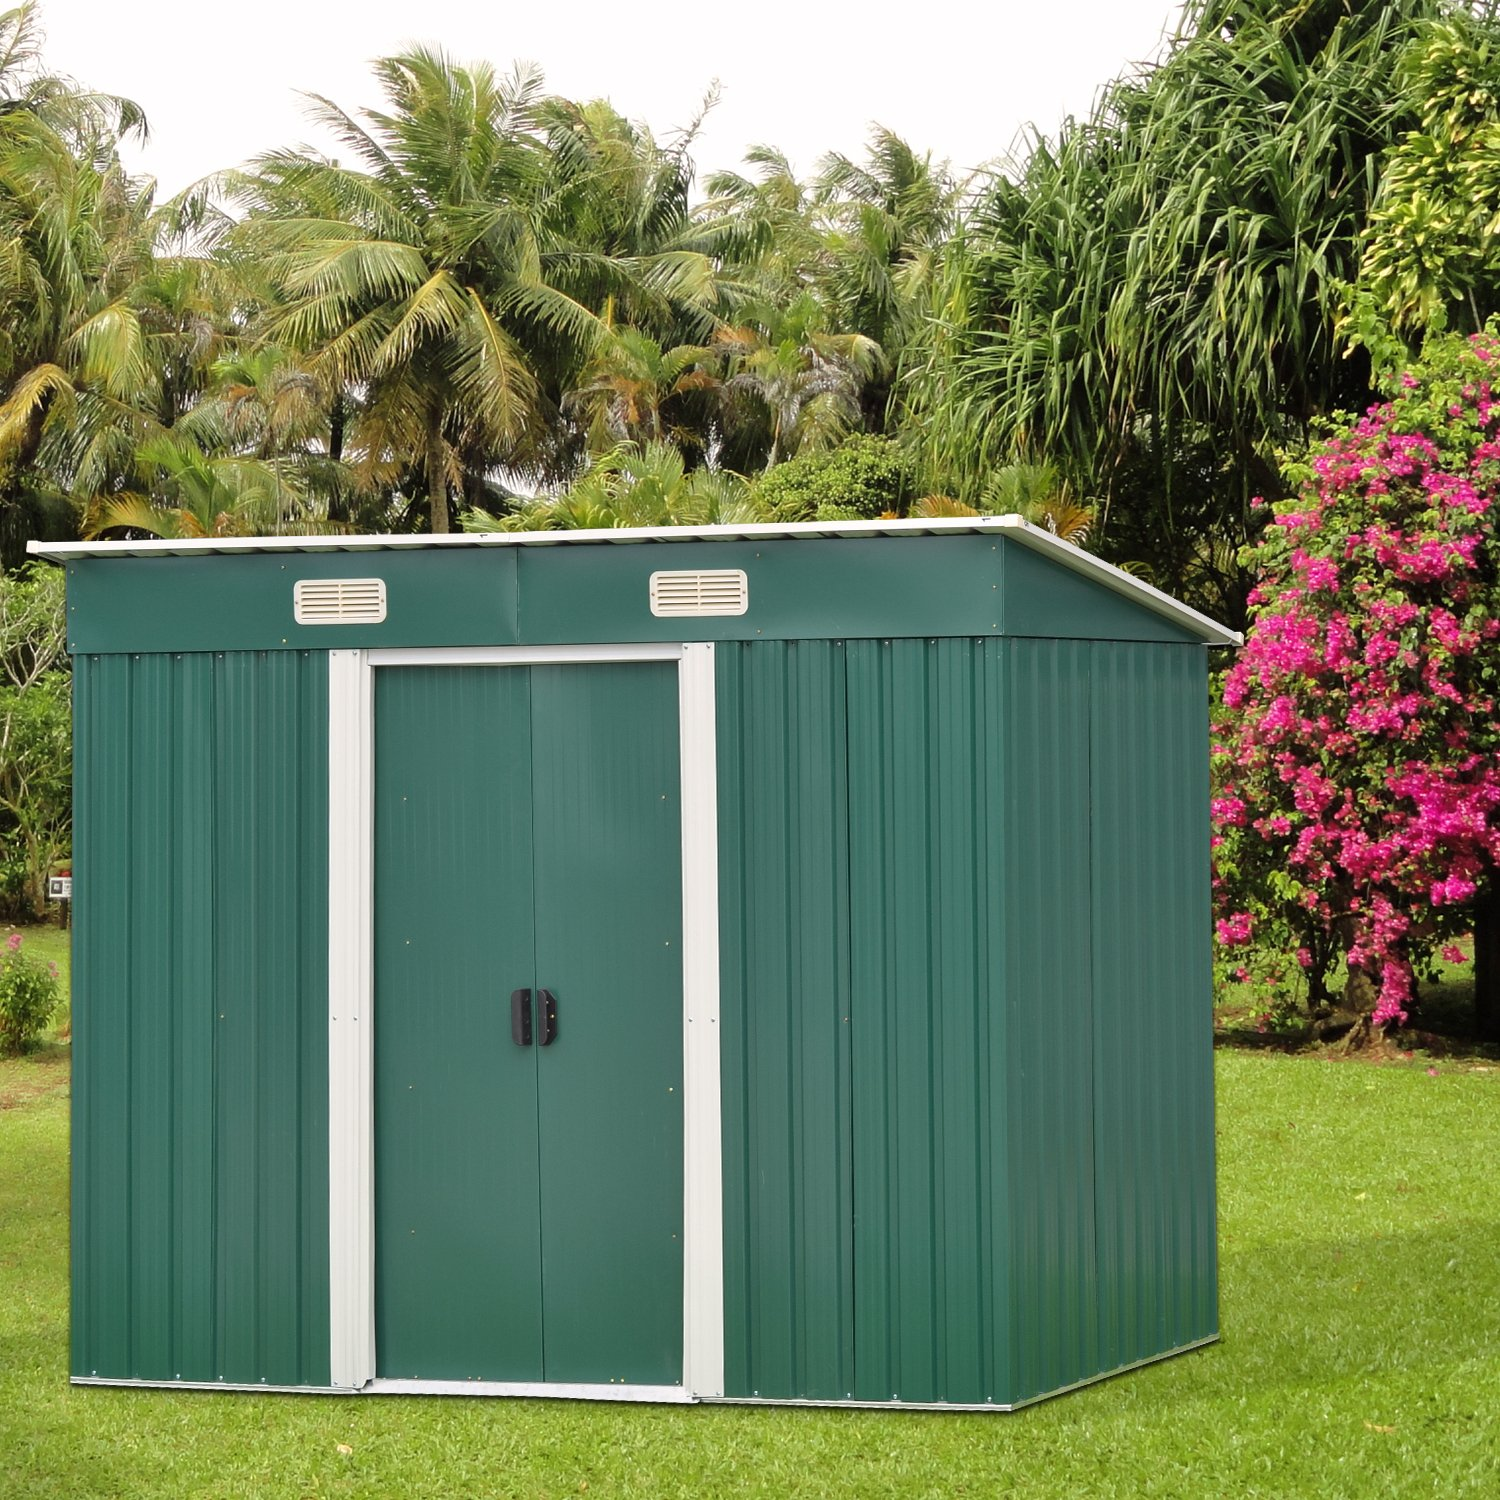 Kinbor 6' x 4' Outdoor Steel Garden Storage Utility Tool Shed Backyard Lawn Tool House Garage Kit Building w/Door (Green)